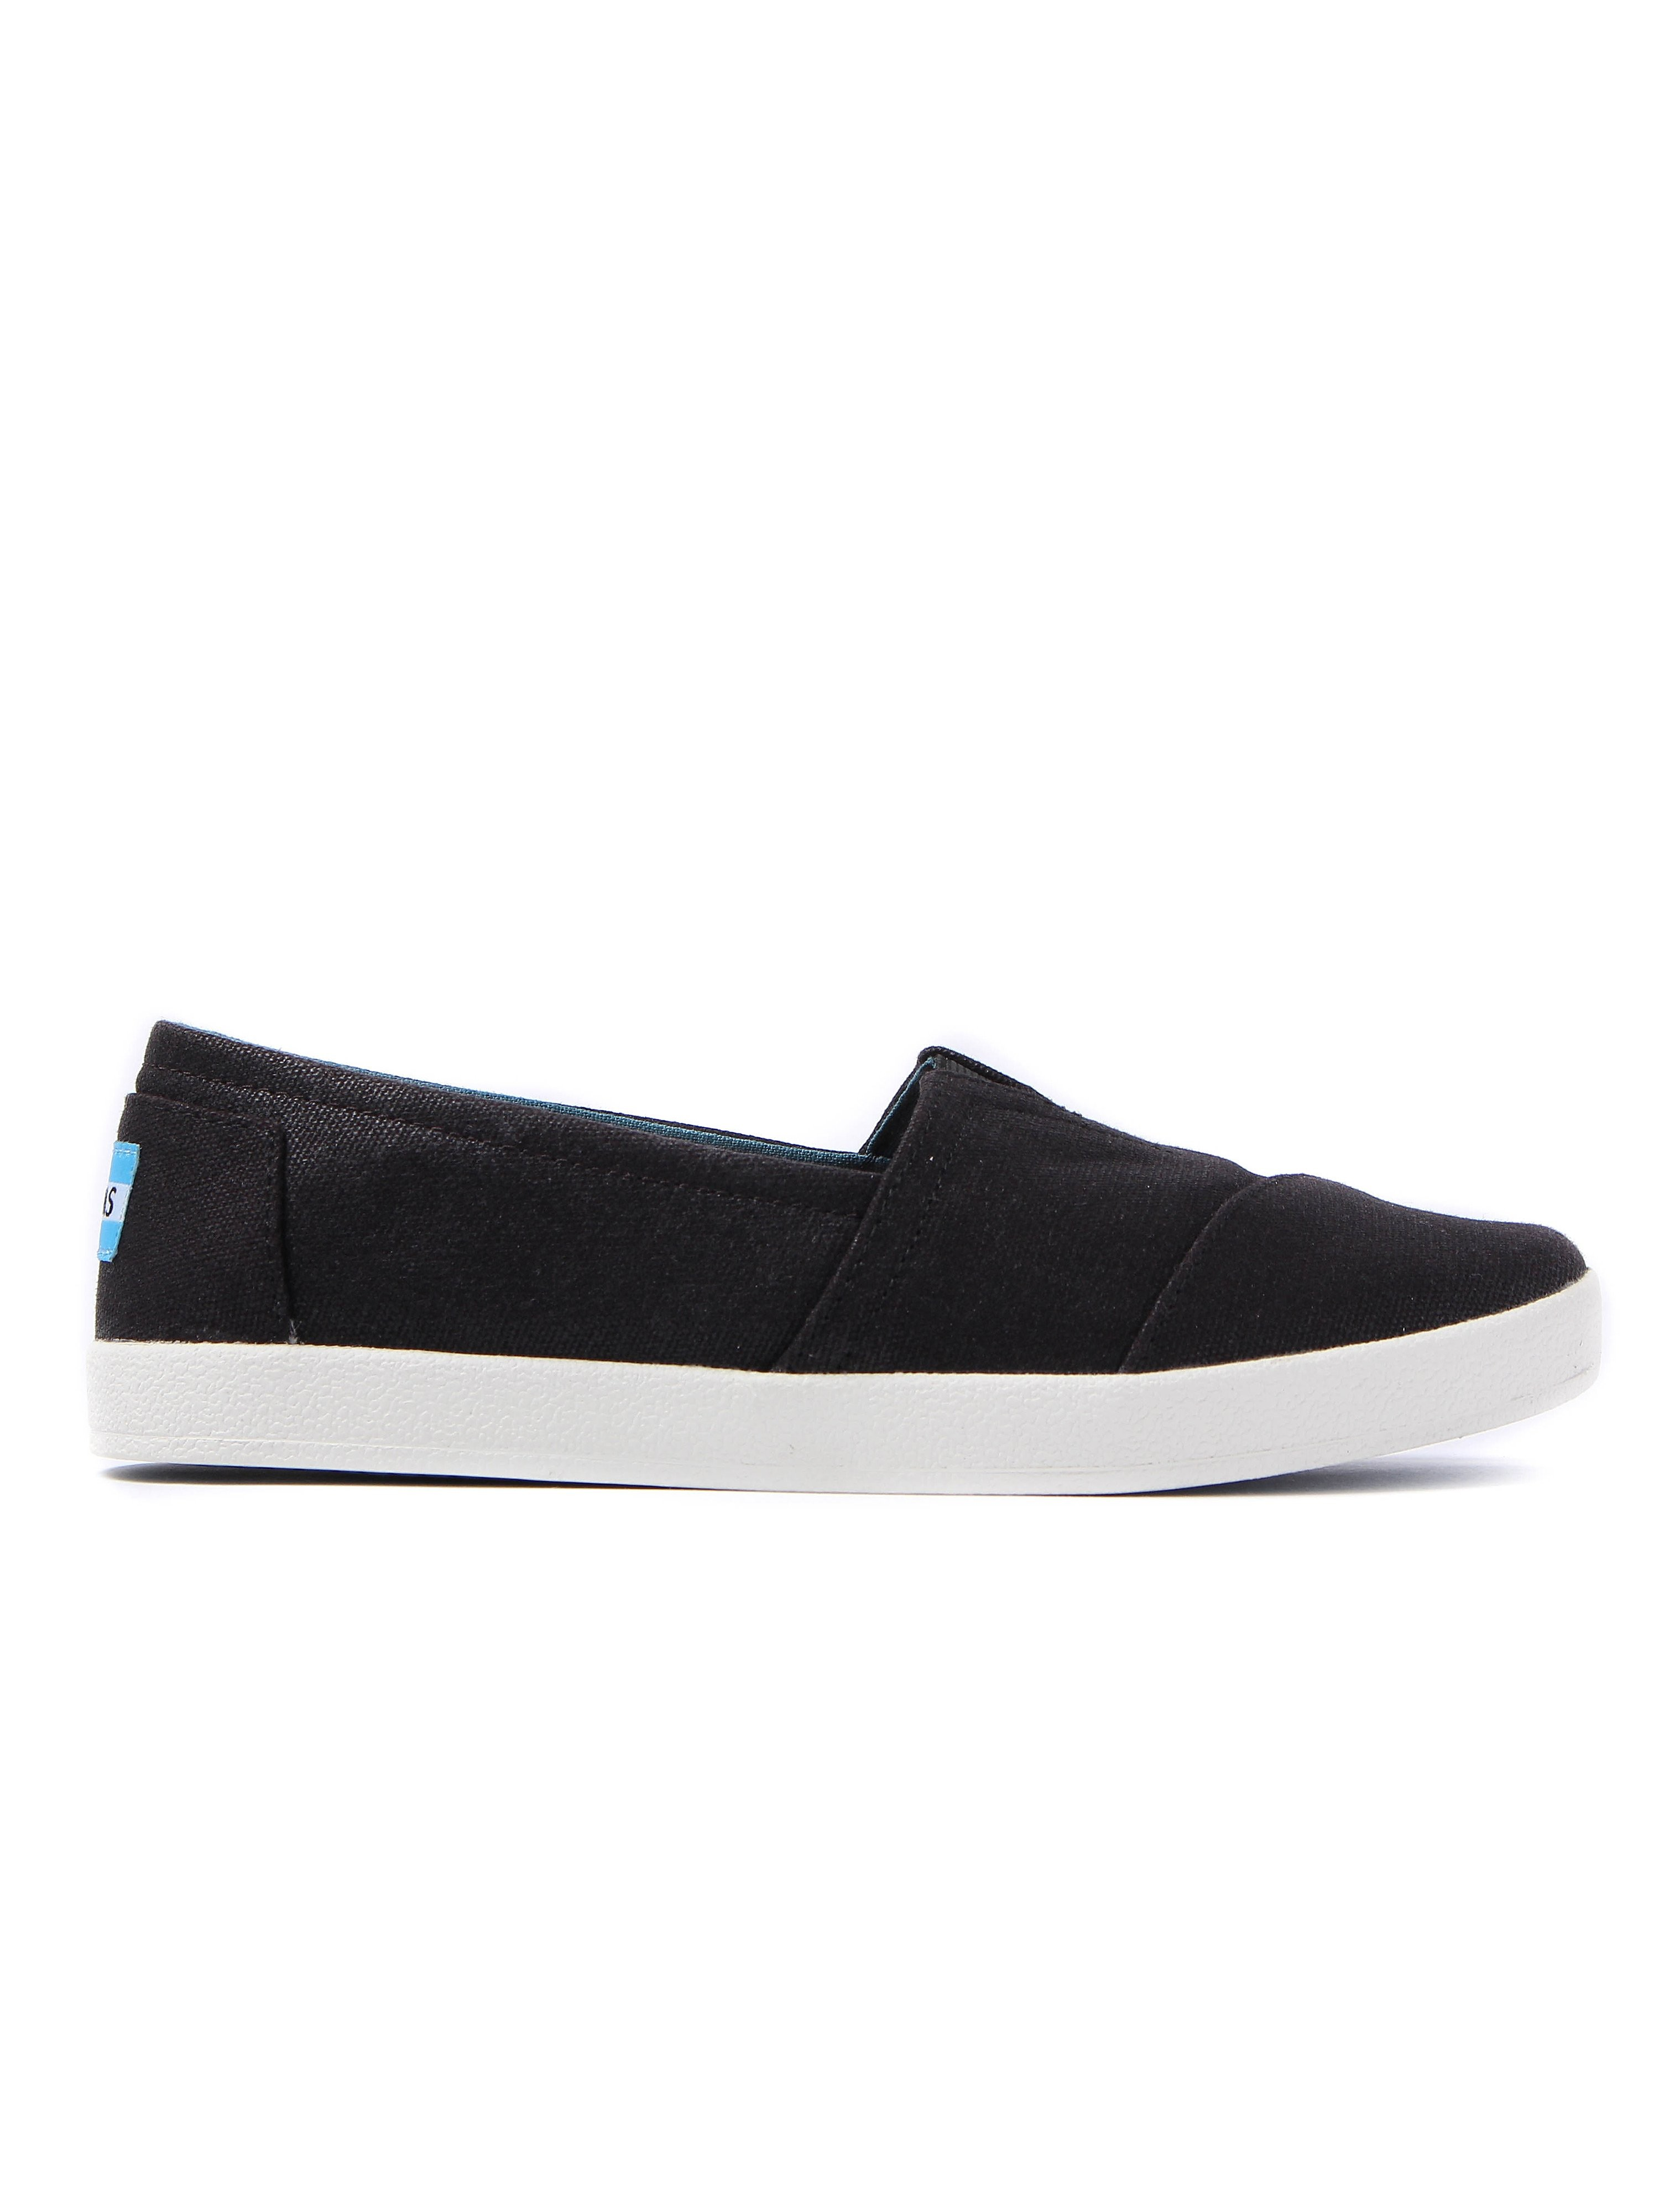 Toms Women's Avalon Coated Canvas Espadrilles - Black